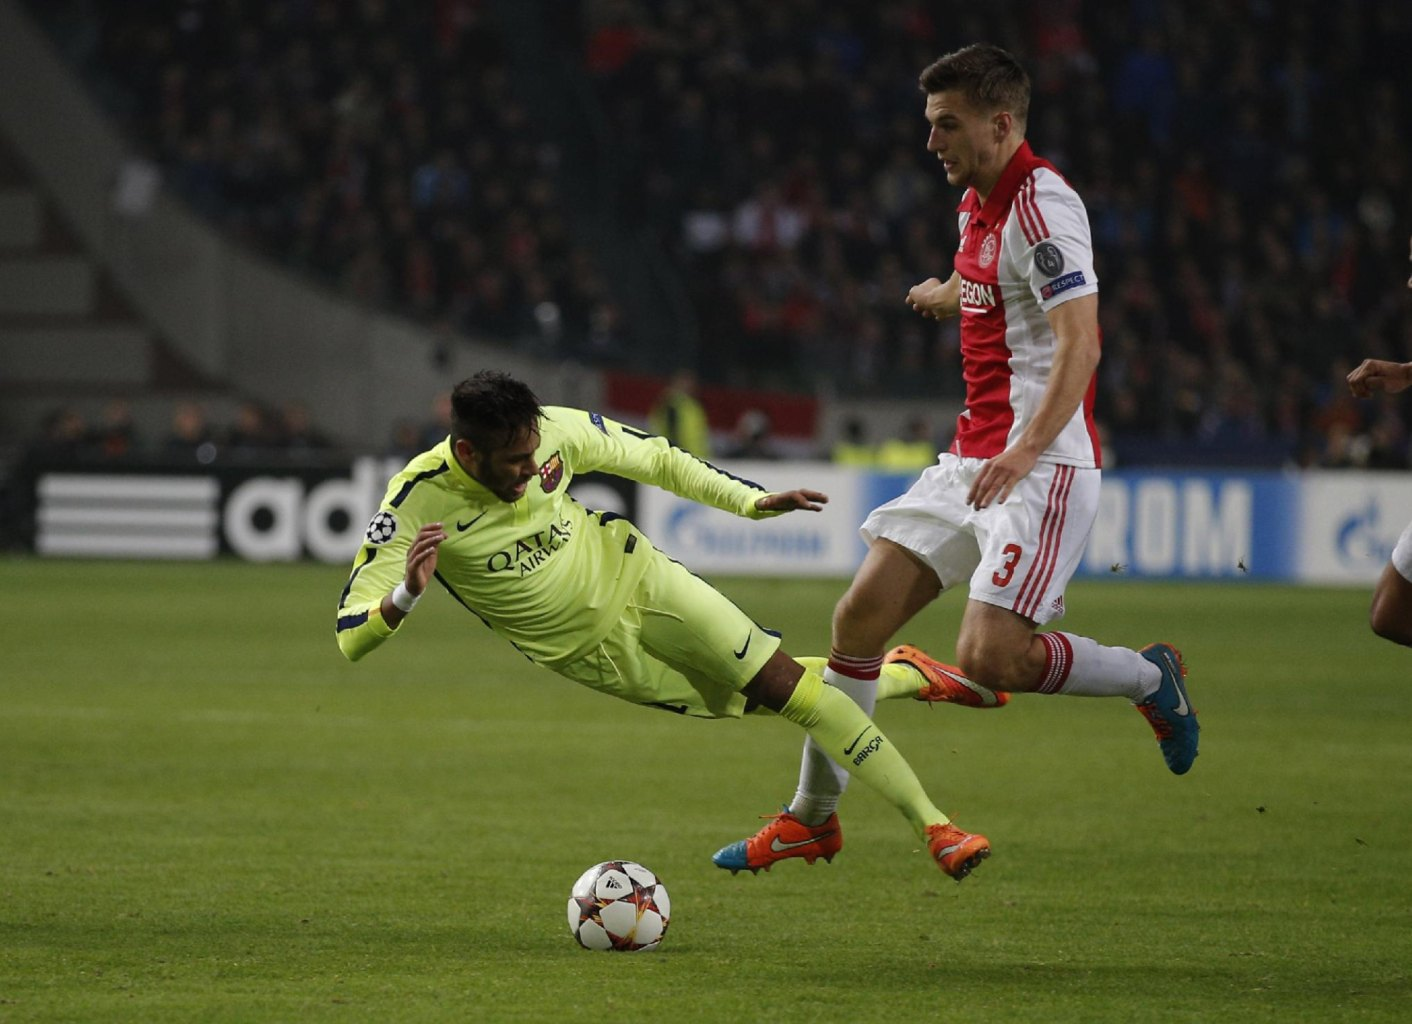 Neymar diving after a touch in Ajax vs Barcelona